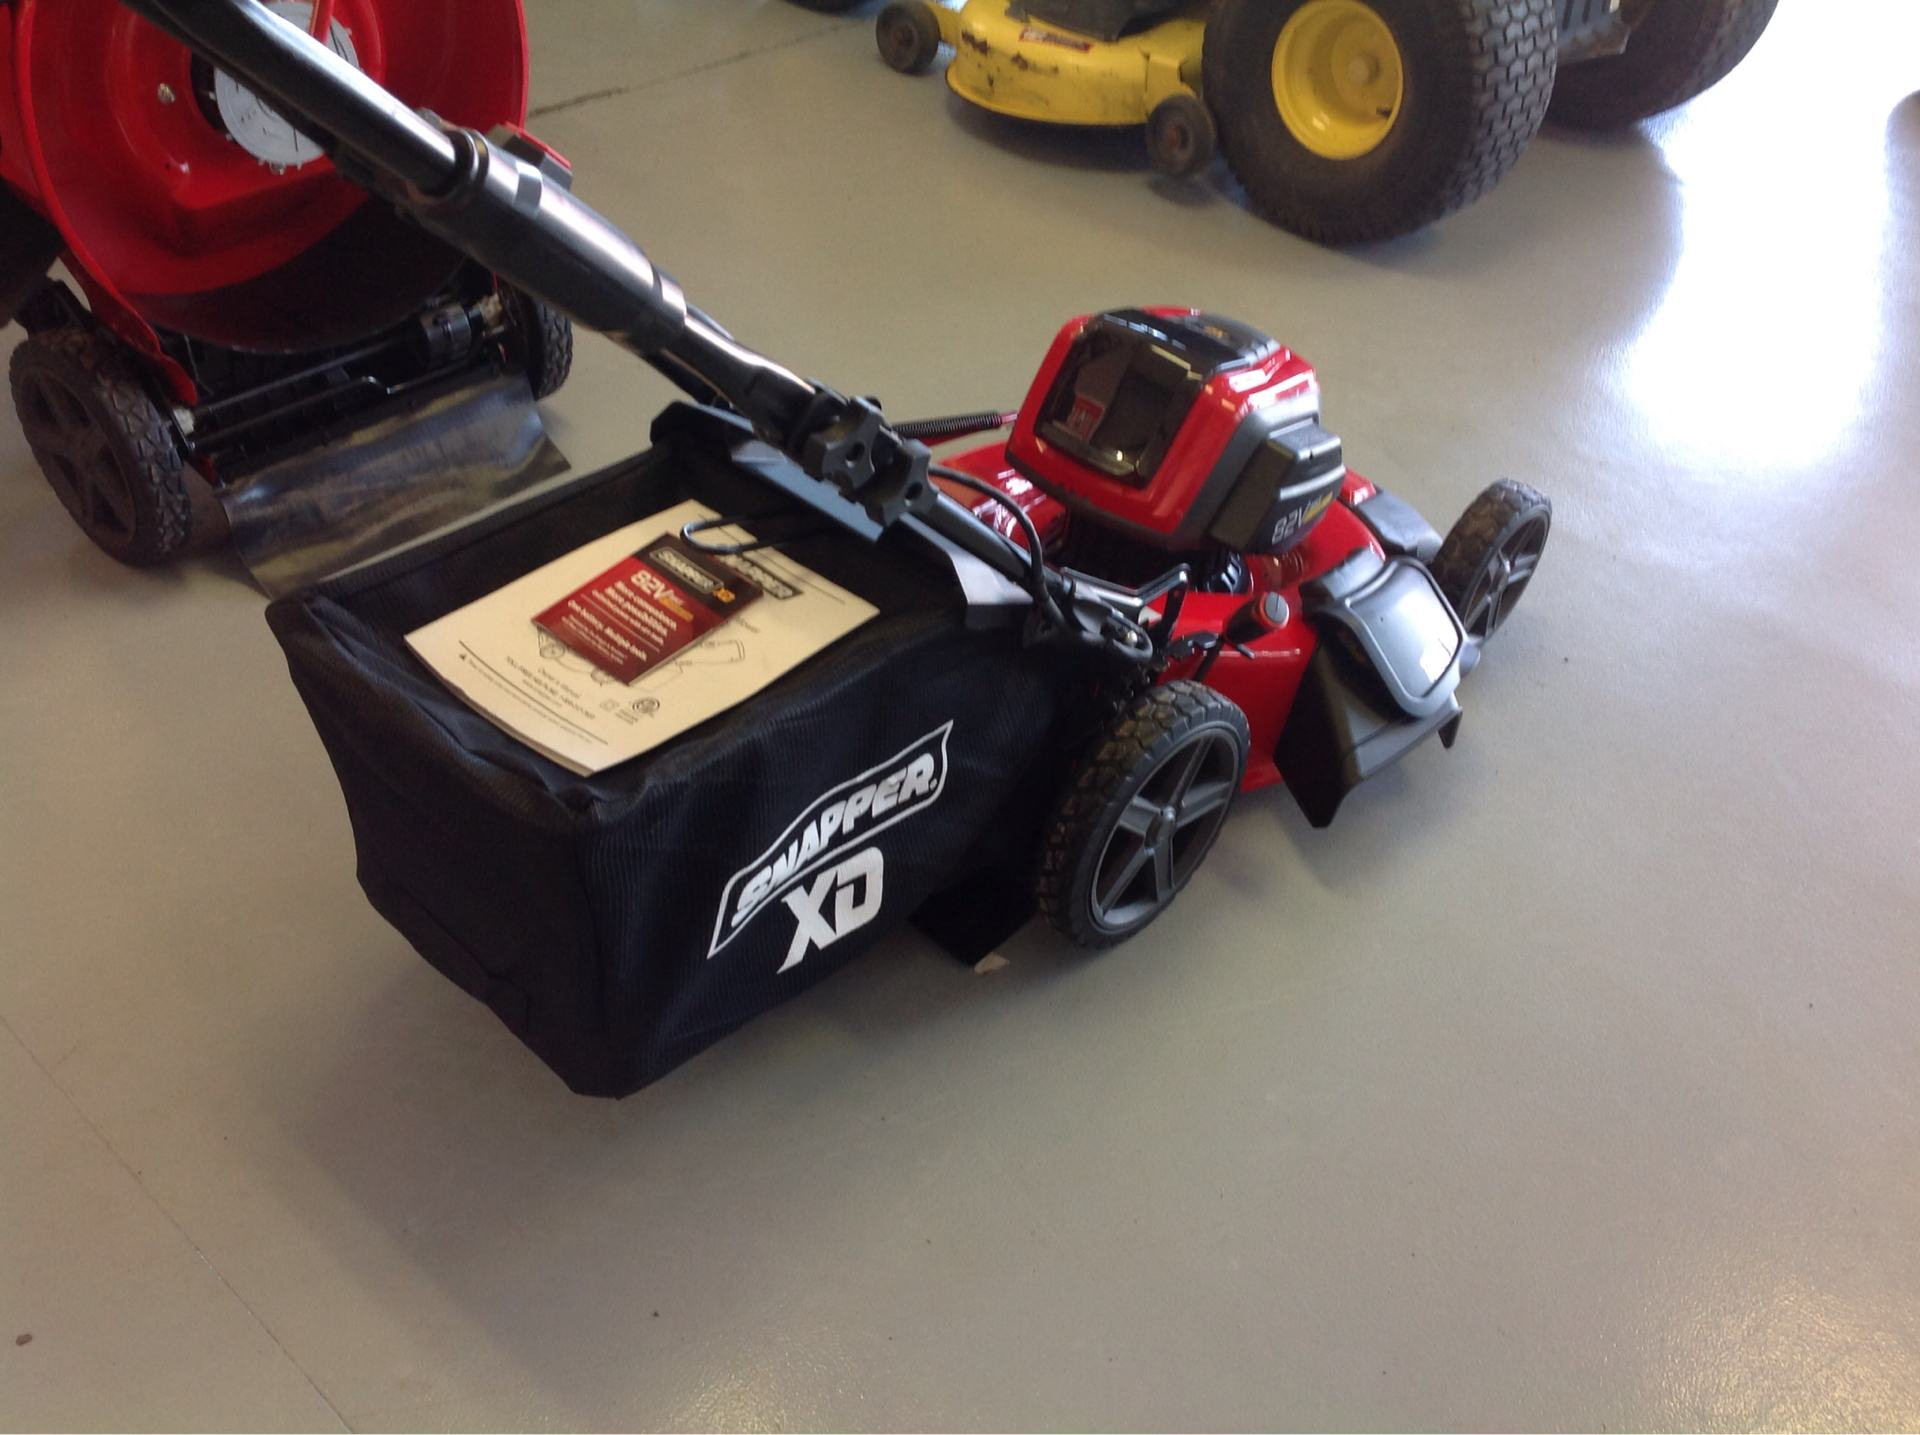 Snapper SXDWM82 21 in. 82V Max Lithium-Ion Cordless Push in Lafayette, Indiana - Photo 3